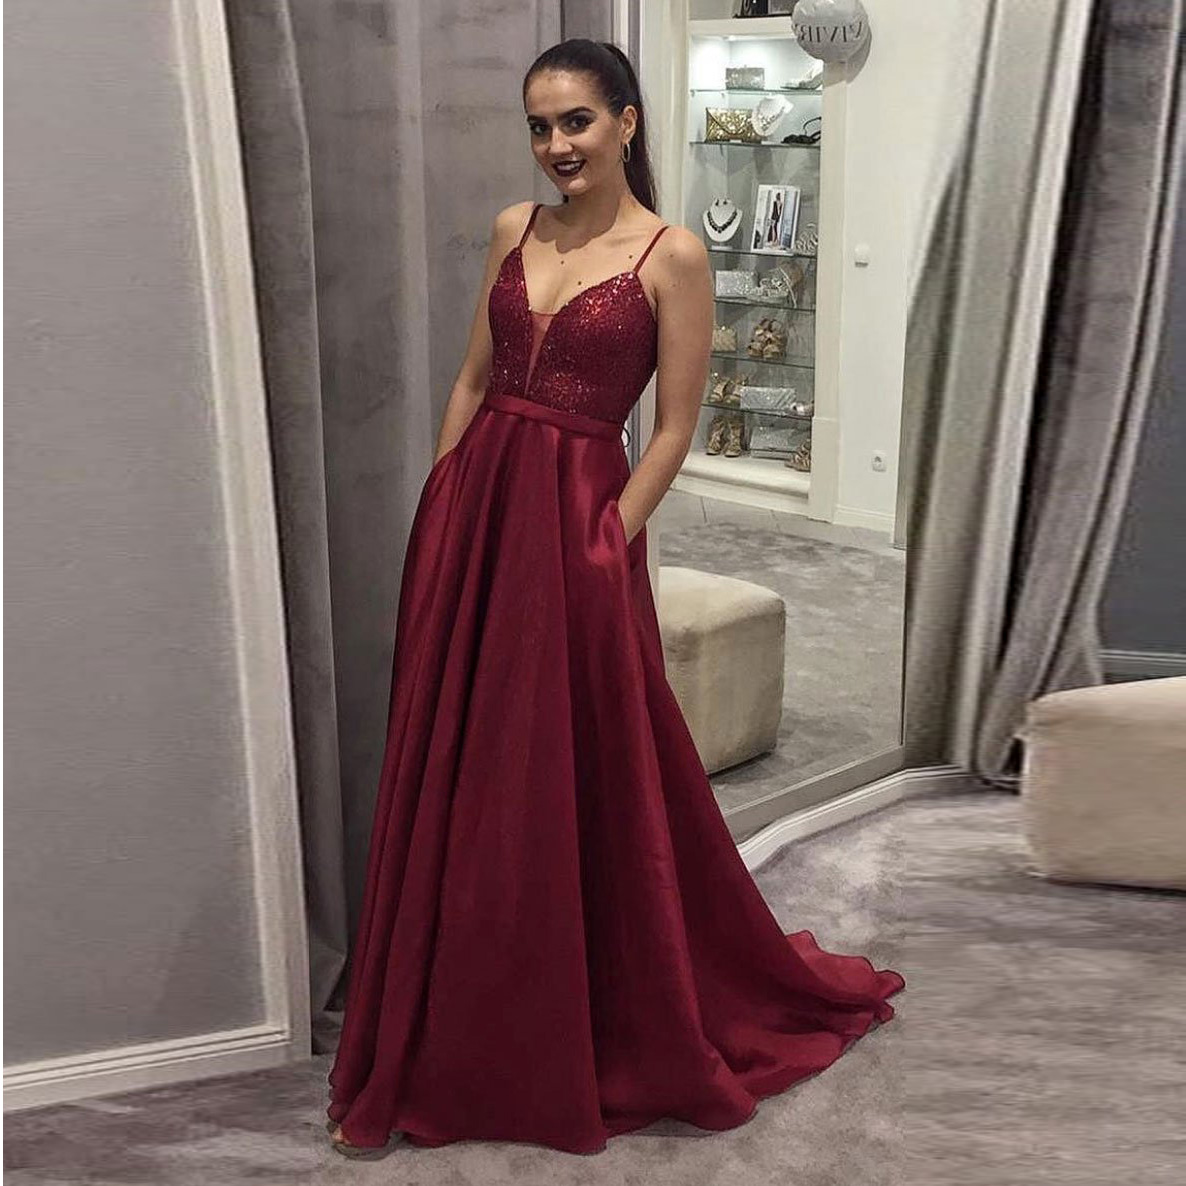 ... 2019 Burgundy Plunging Prom Dress A Line Formal Evening Gown With  Sequined Bodice - Thumbnail 3 873136aef